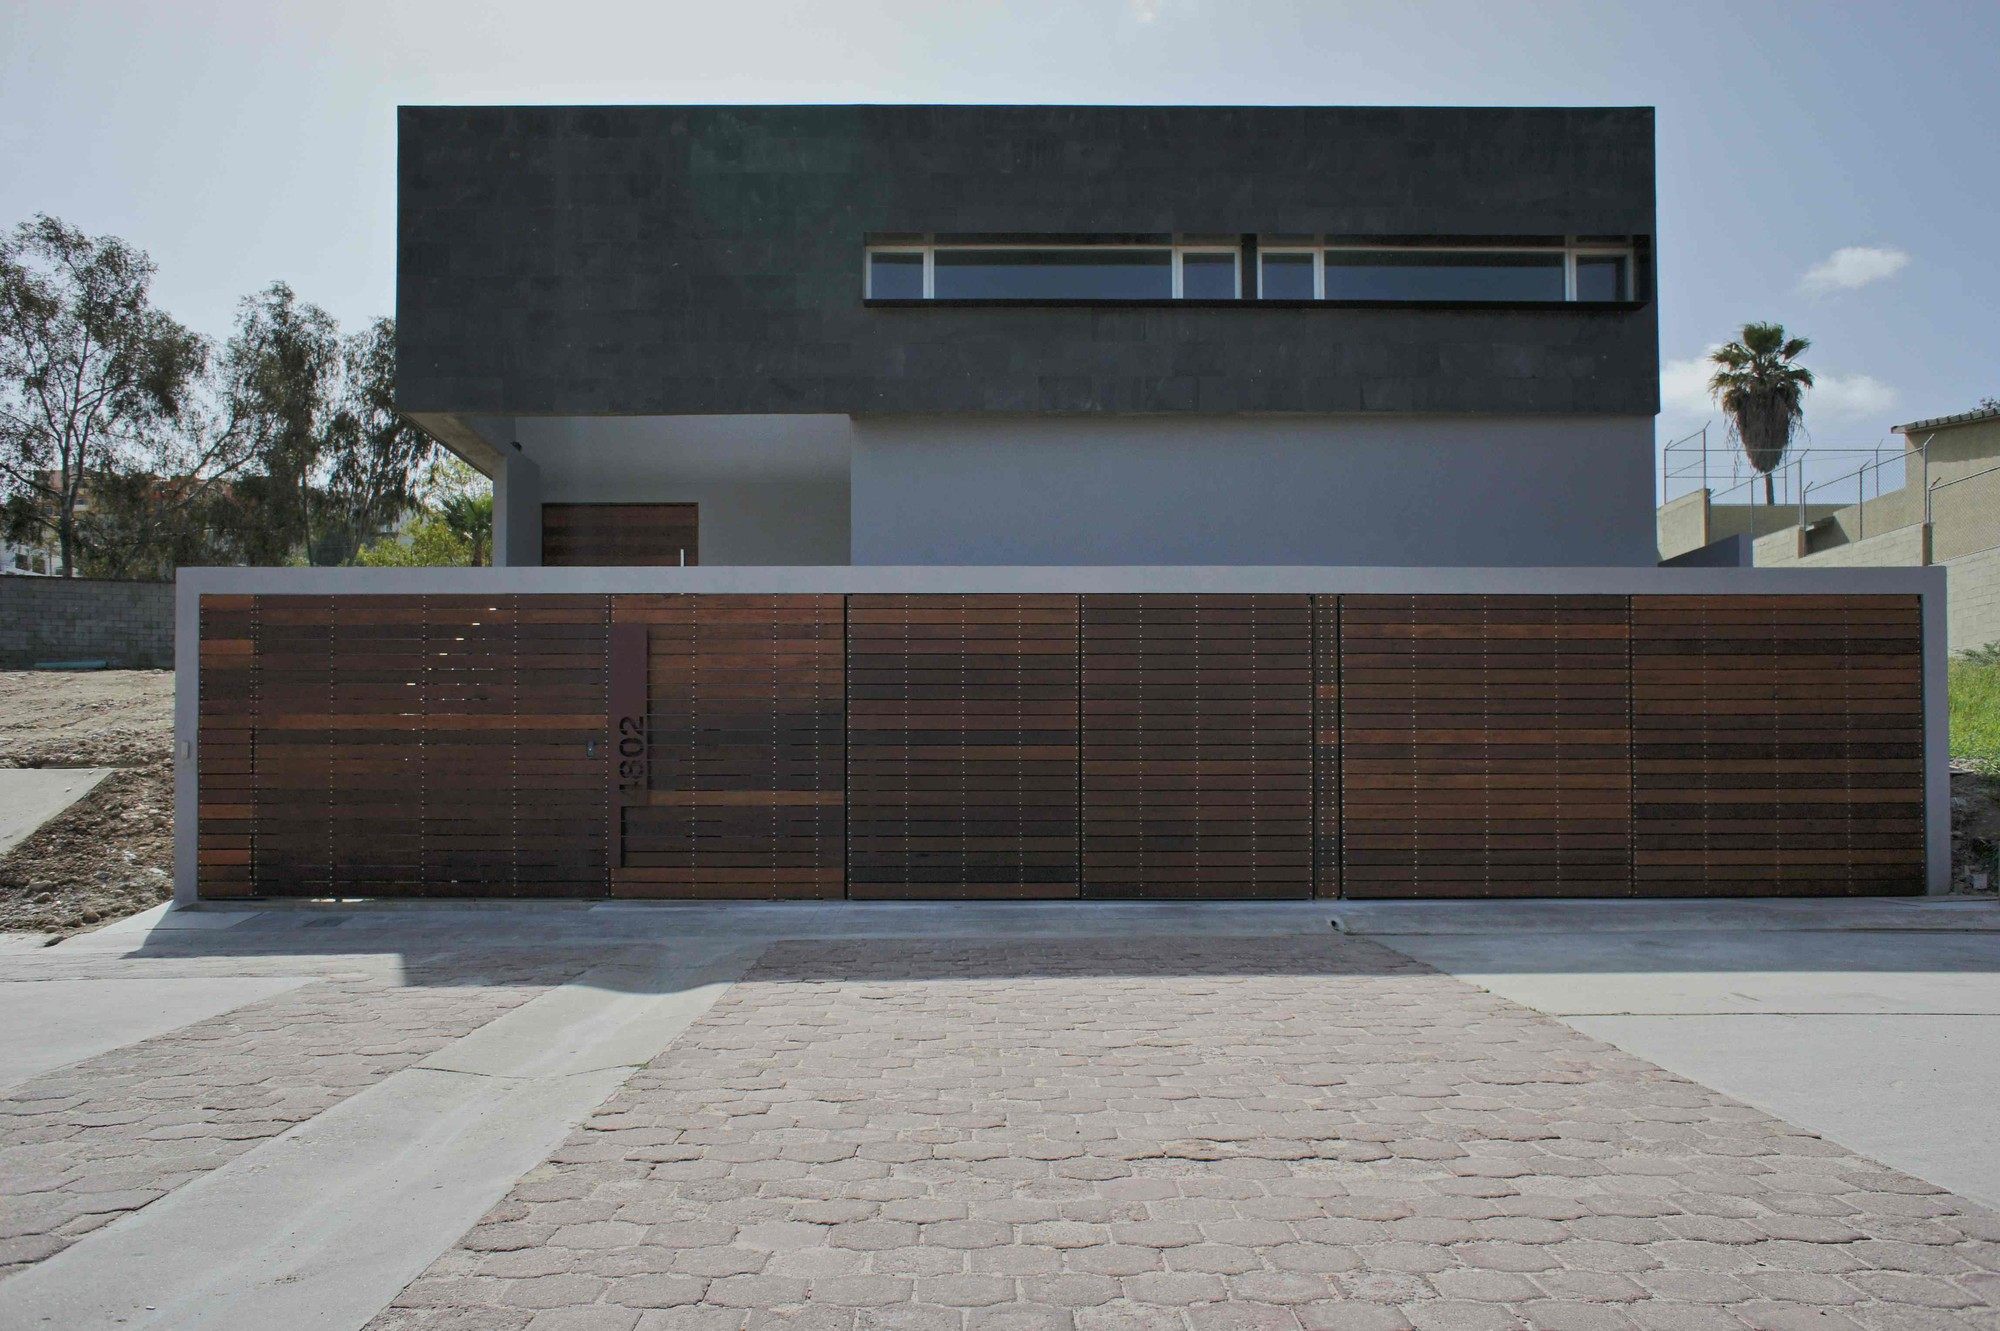 Casa PH3 / Pablo Casals-Aguirre + T38 studio, © Alfresco